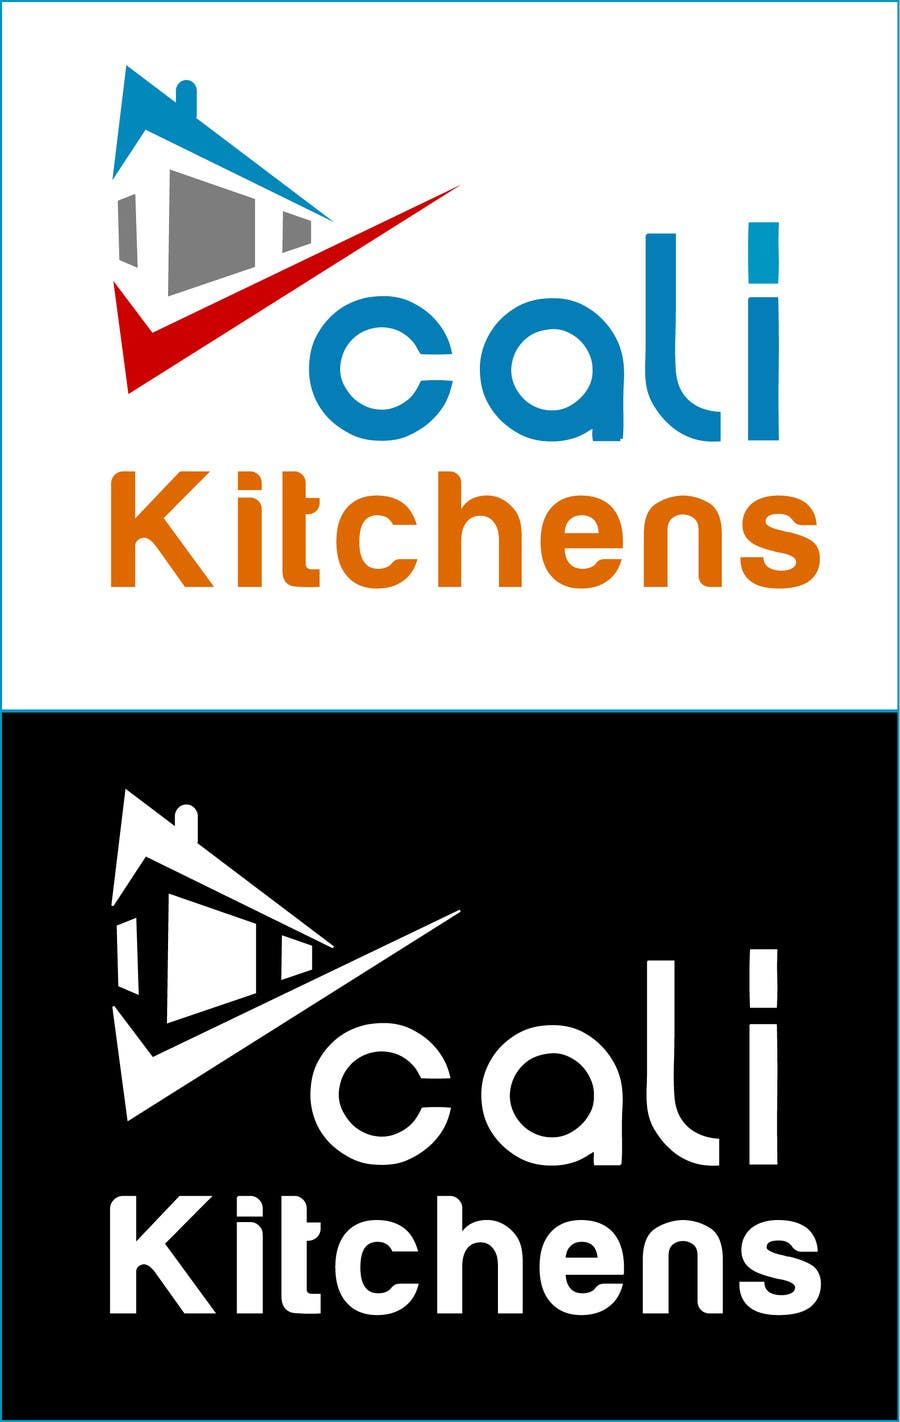 #7 for Design a Logo for Kitchen Cabinet company by rgbmamun